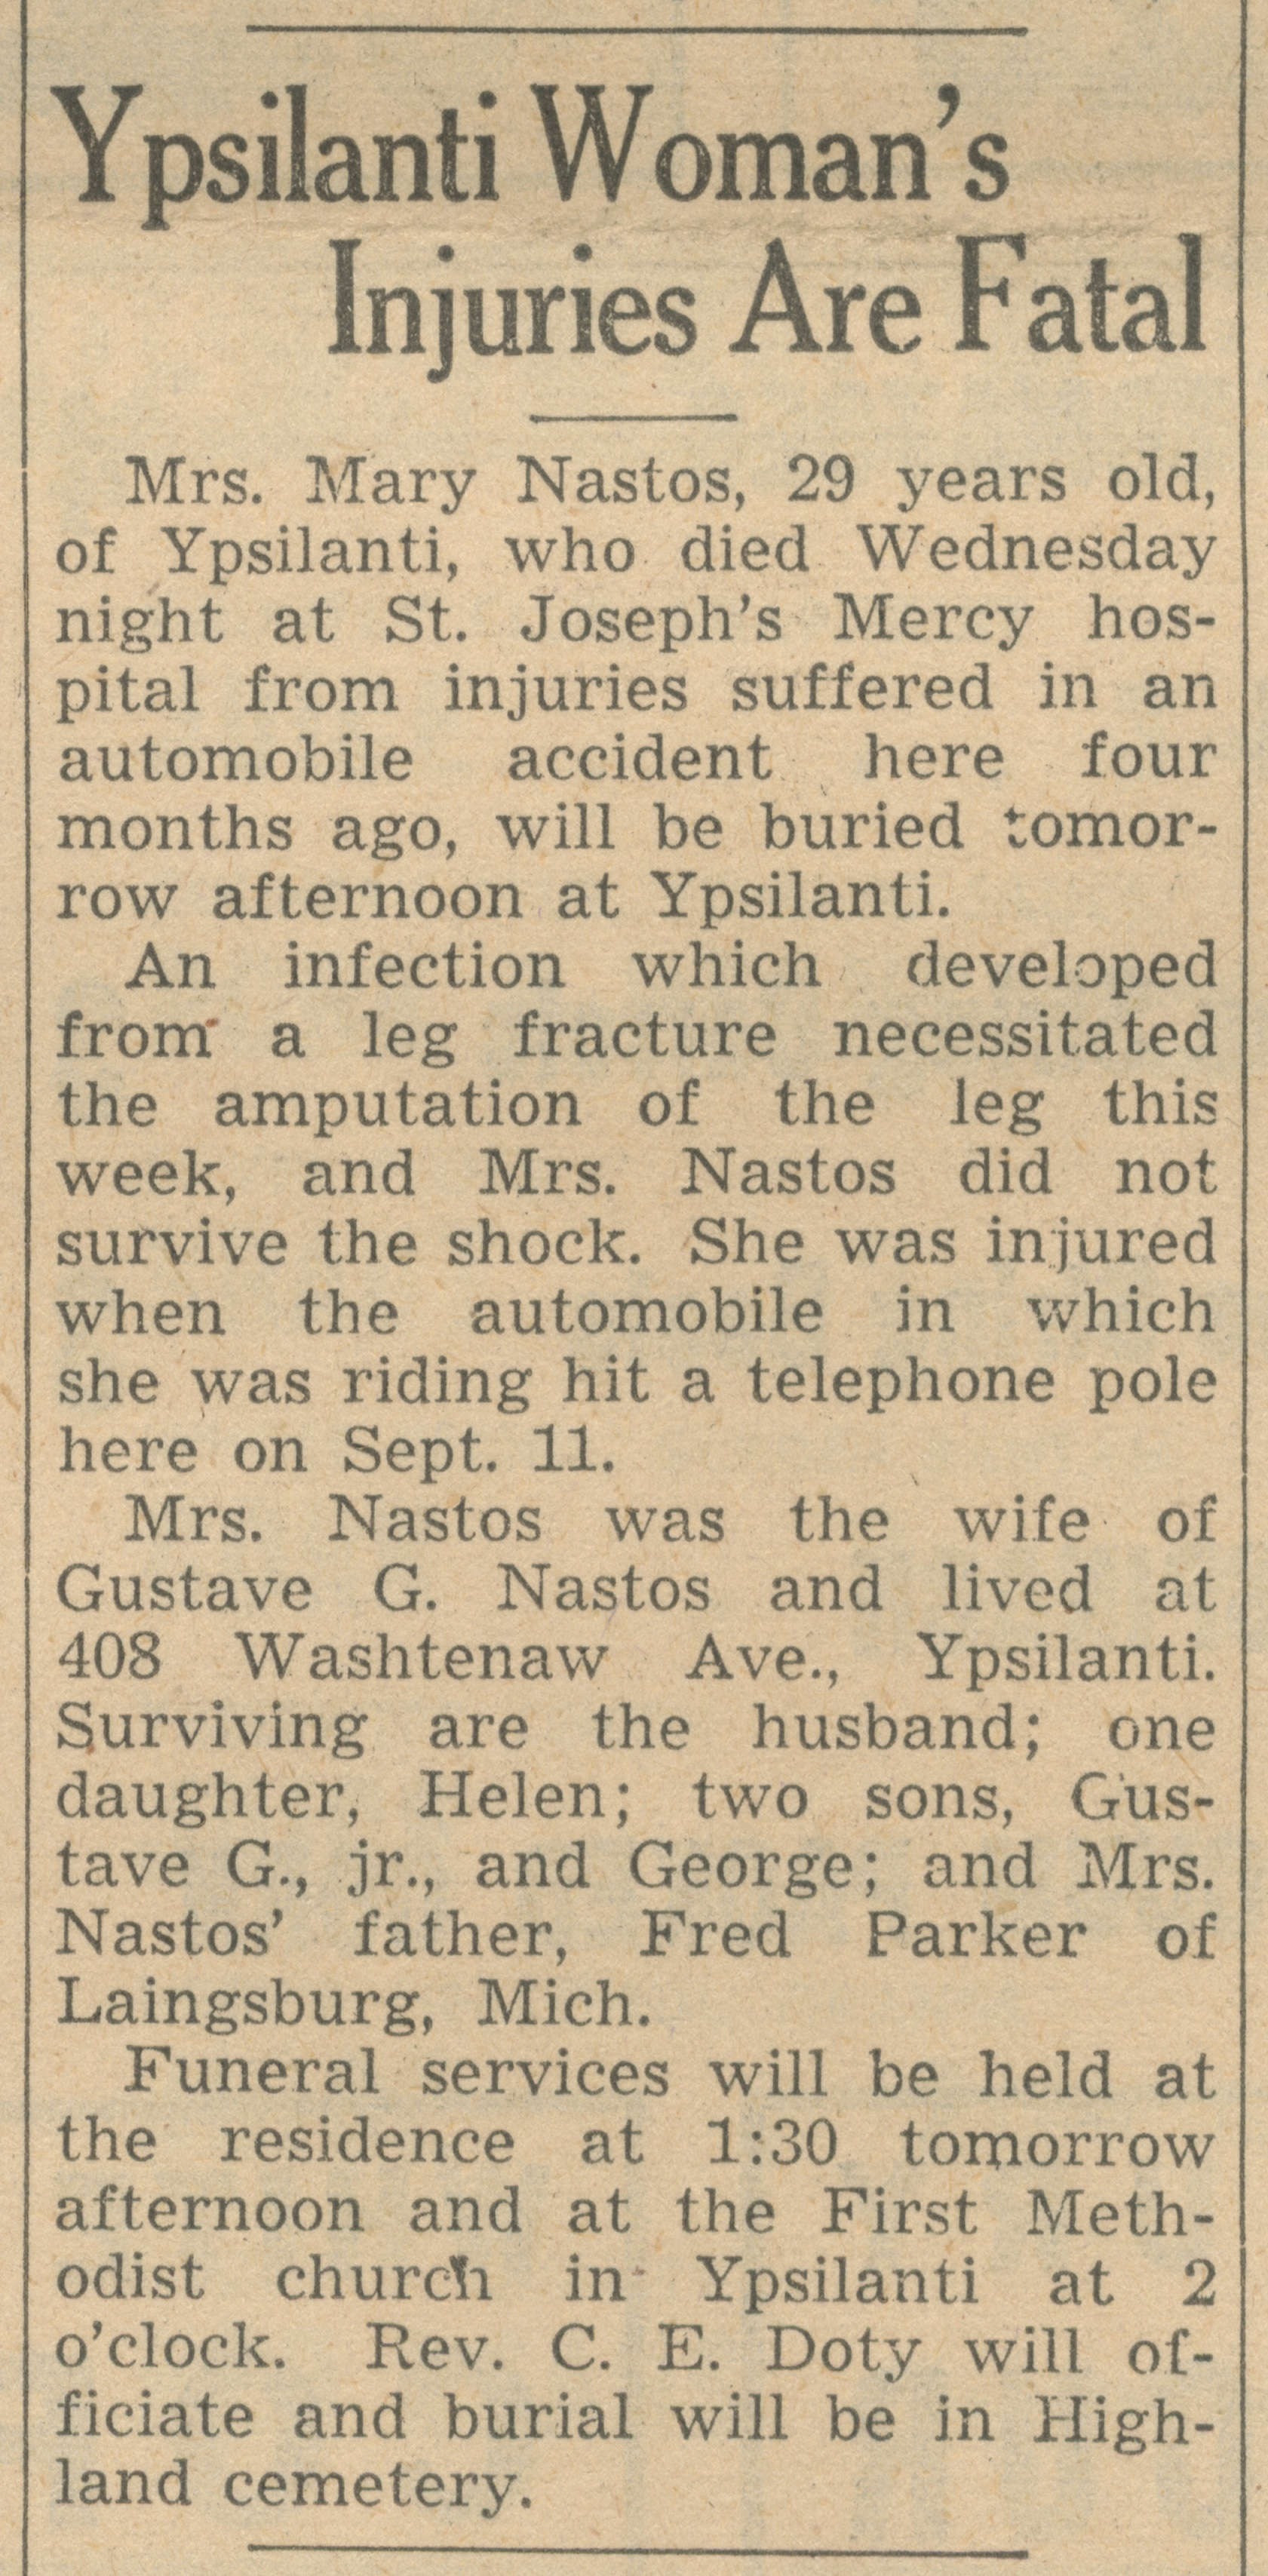 Ypsilanti Woman's Injuries Are Fatal image